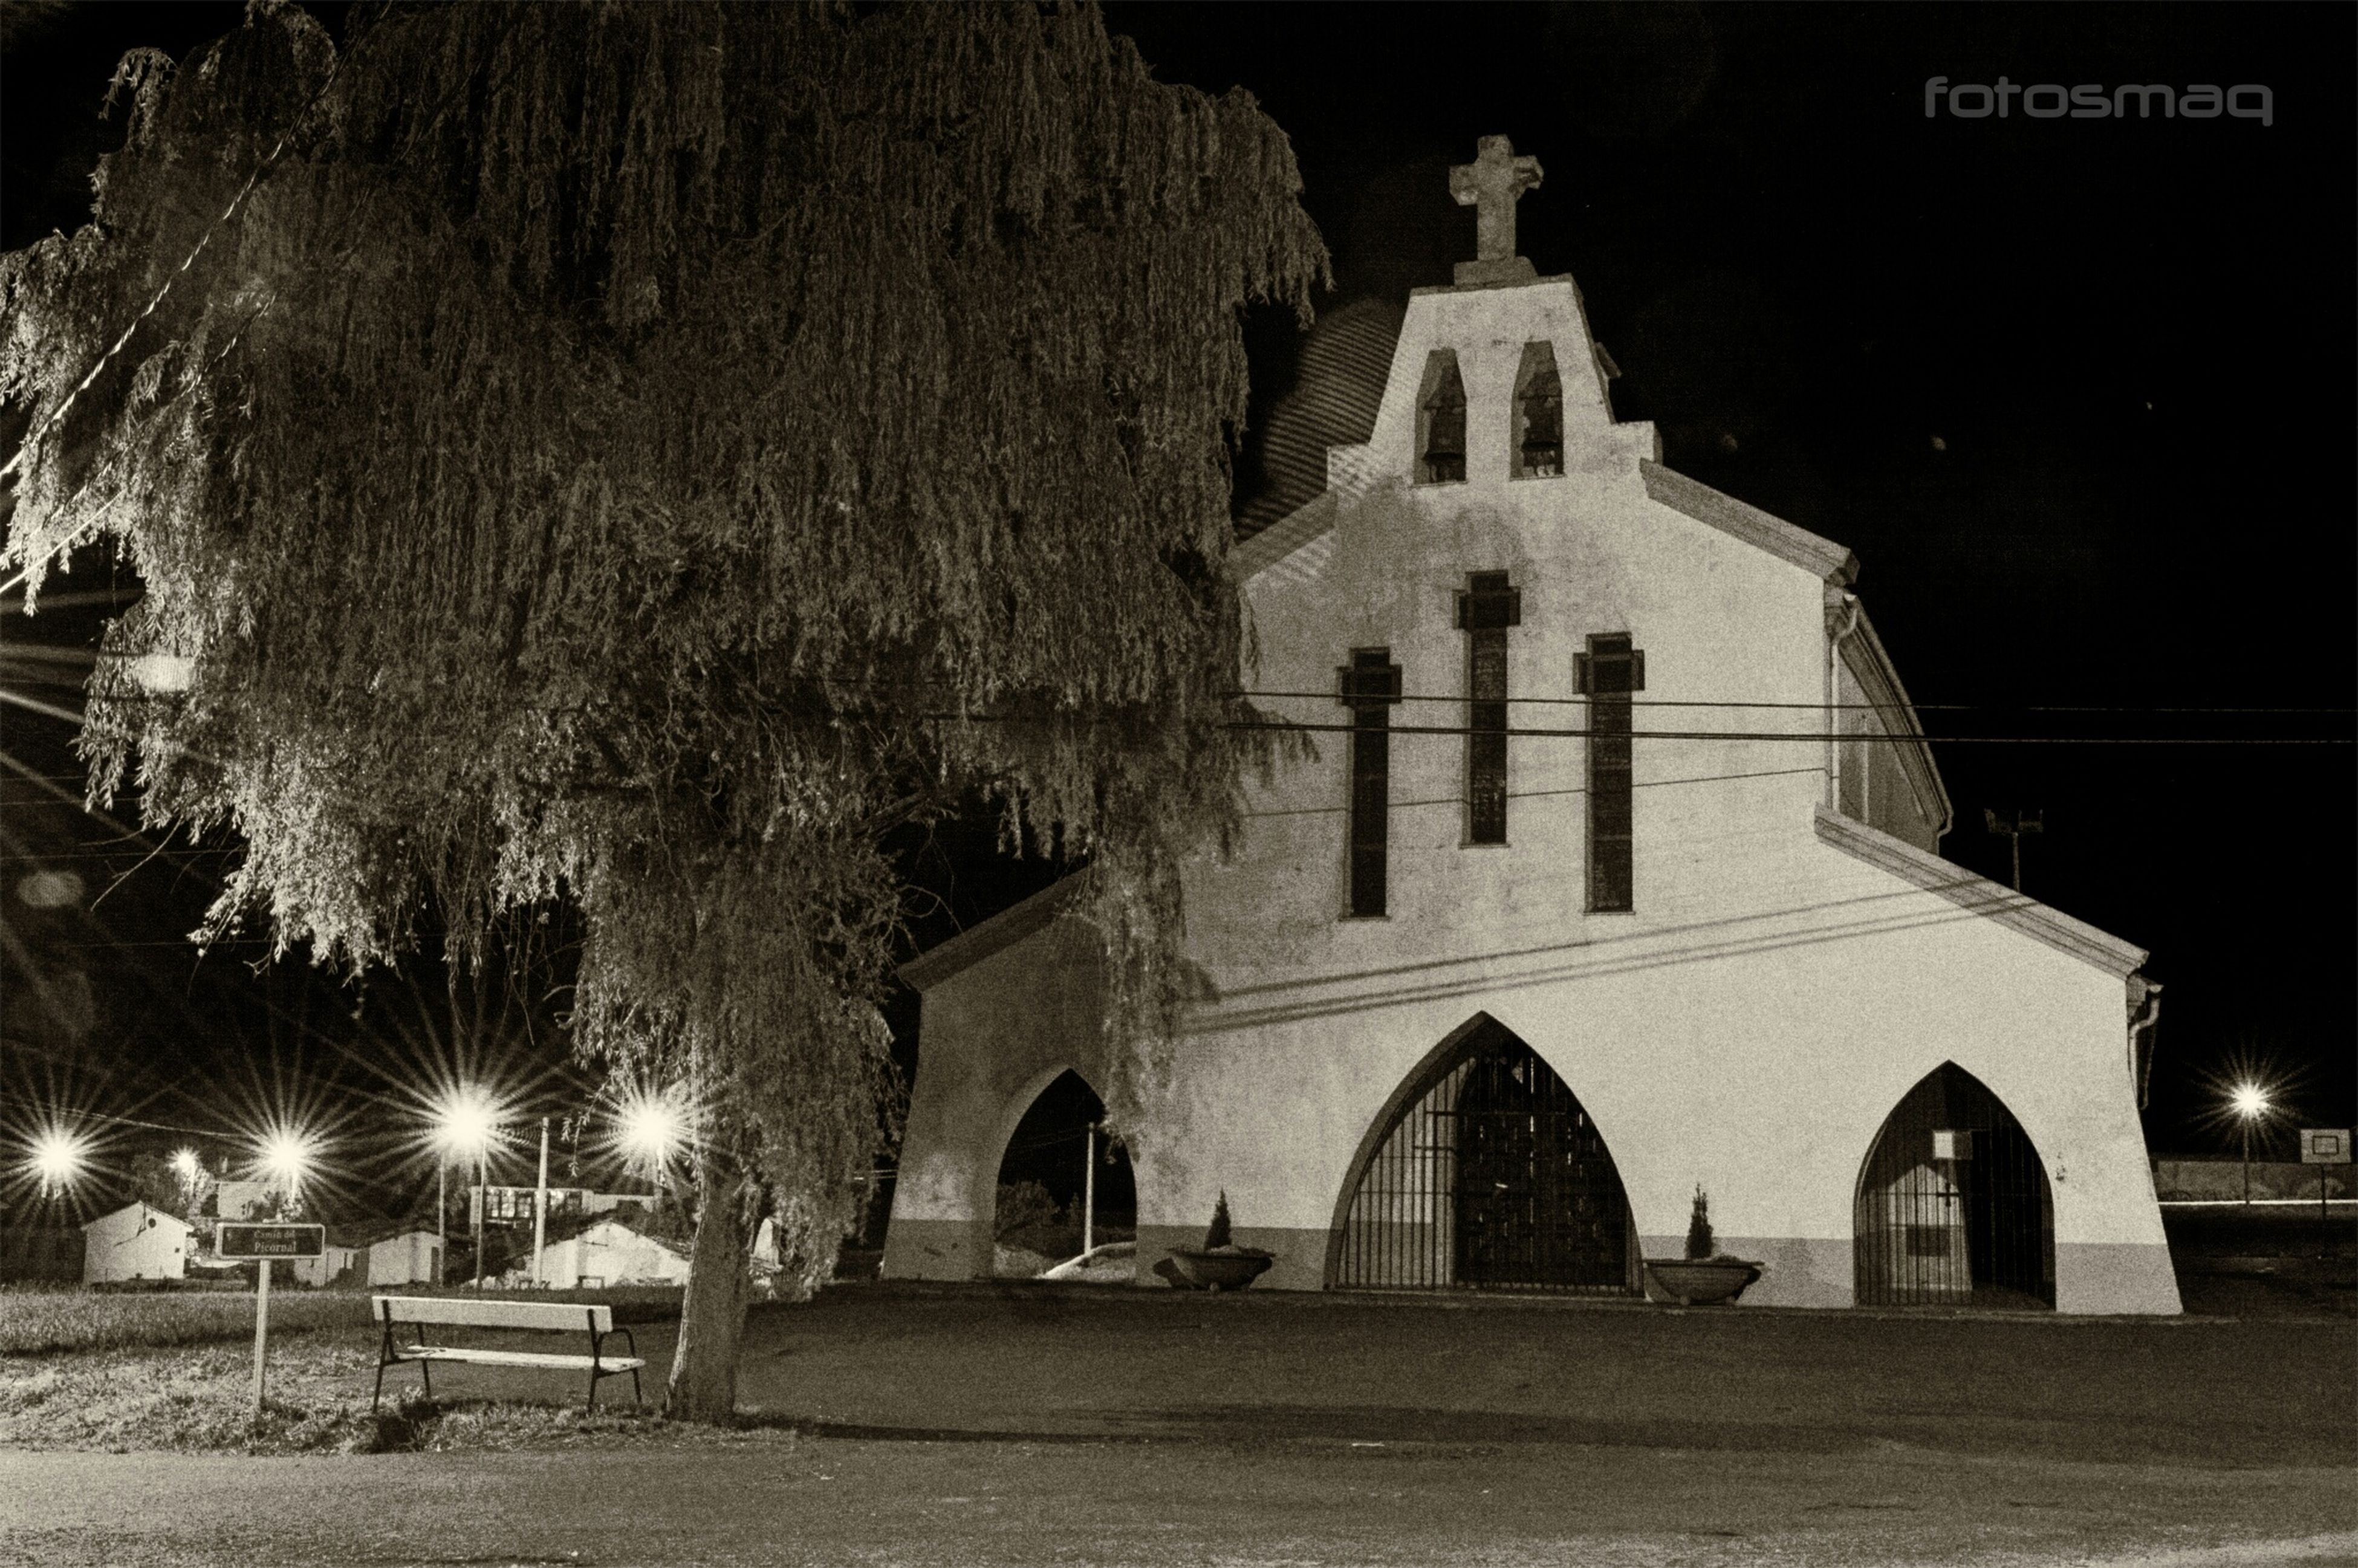 religion, place of worship, church, spirituality, architecture, built structure, building exterior, night, cathedral, cross, illuminated, facade, arch, dome, travel destinations, history, low angle view, famous place